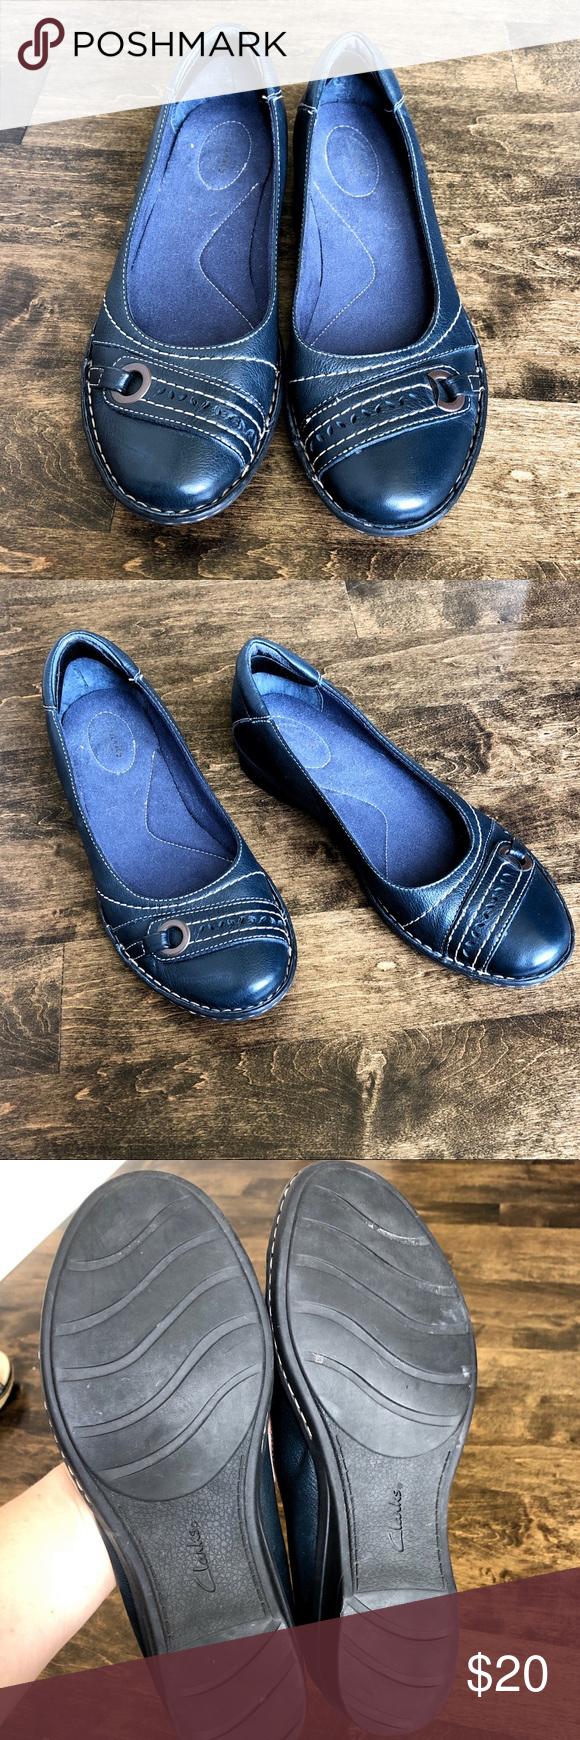 Clarks Flat Navy Shoes with Buckle 9.5